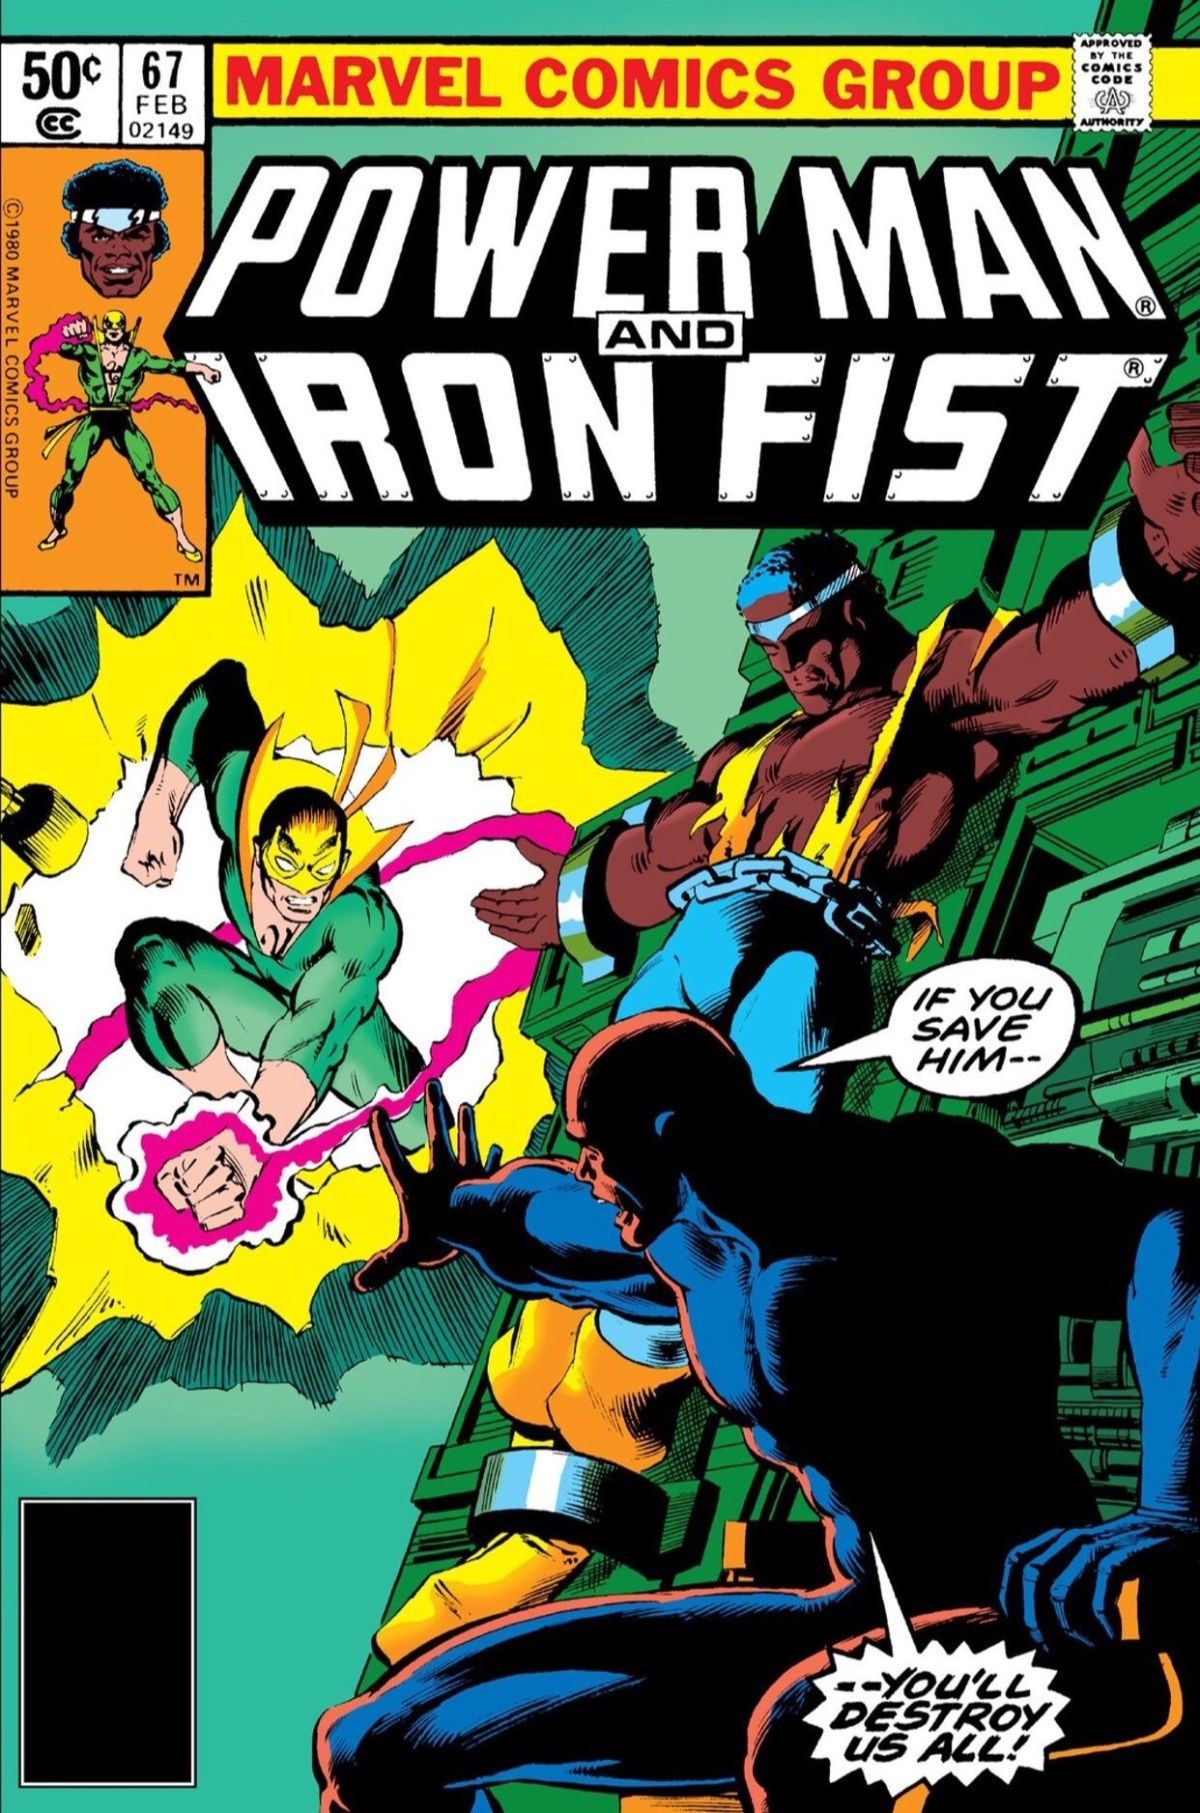 Power Man and Iron Fist #67